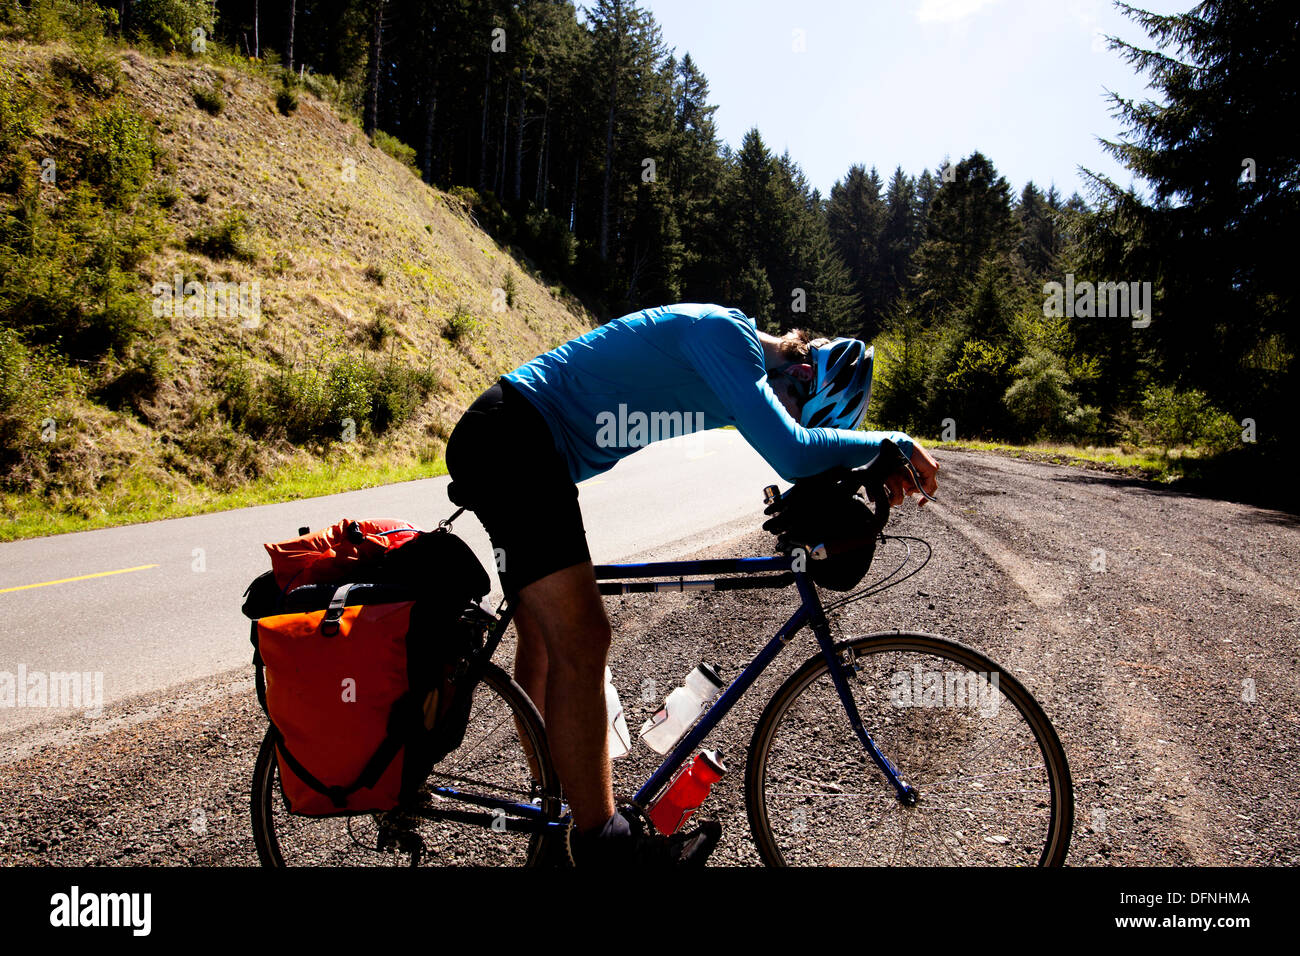 An exhausted male cyclist leans over his touring bike while climbing Mattole Road near Ferndale, California. - Stock Image